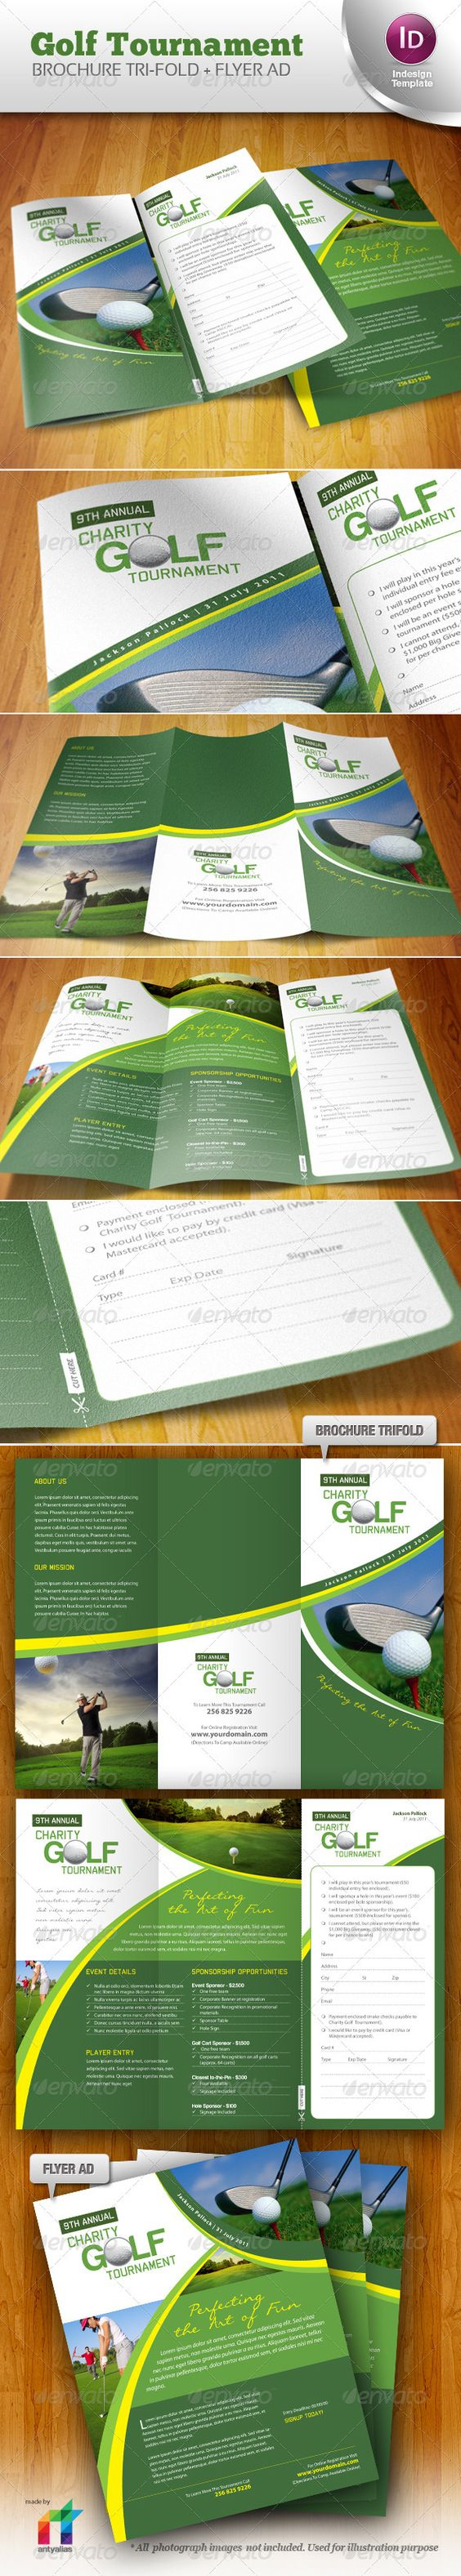 golf tournament brochure template - brochures flyers and golf on pinterest